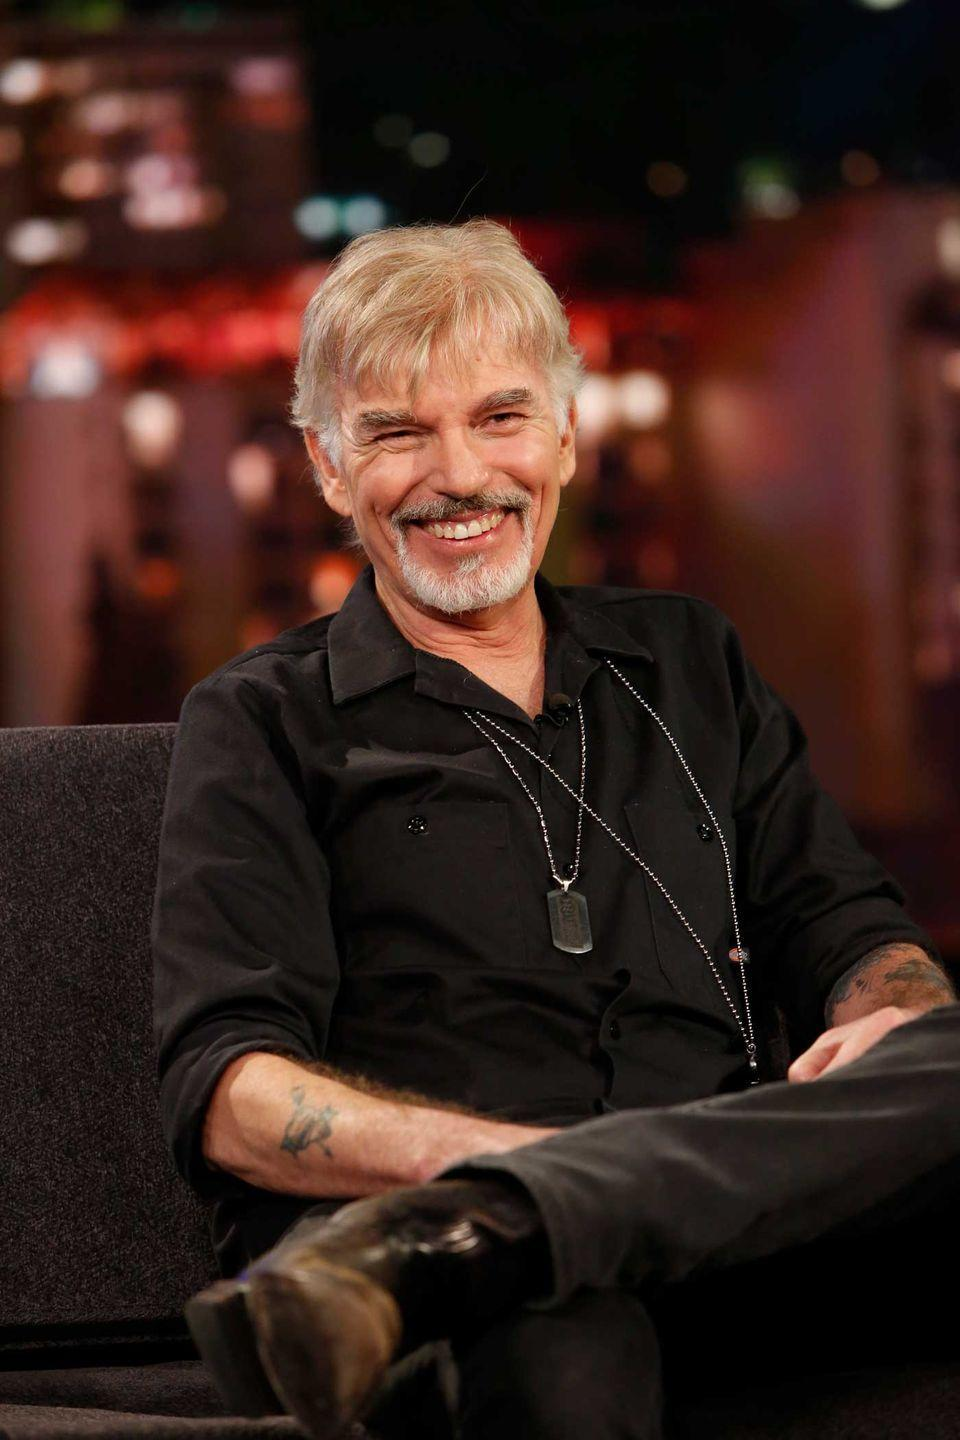 <p>Had no idea Billy Bob Thornton was in a band called The Boxmasters? Same. Between the band and on his own, he's released 12 albums. His first album, <em>Private Radio</em>, was recorded in his home studio, which was built and formerly owned by ex–Guns N' Roses guitarist Slash. He even has a song on the album titled <em>Angelina</em>, obviously about his wife at the time, Angelina Jolie. Yep.</p>